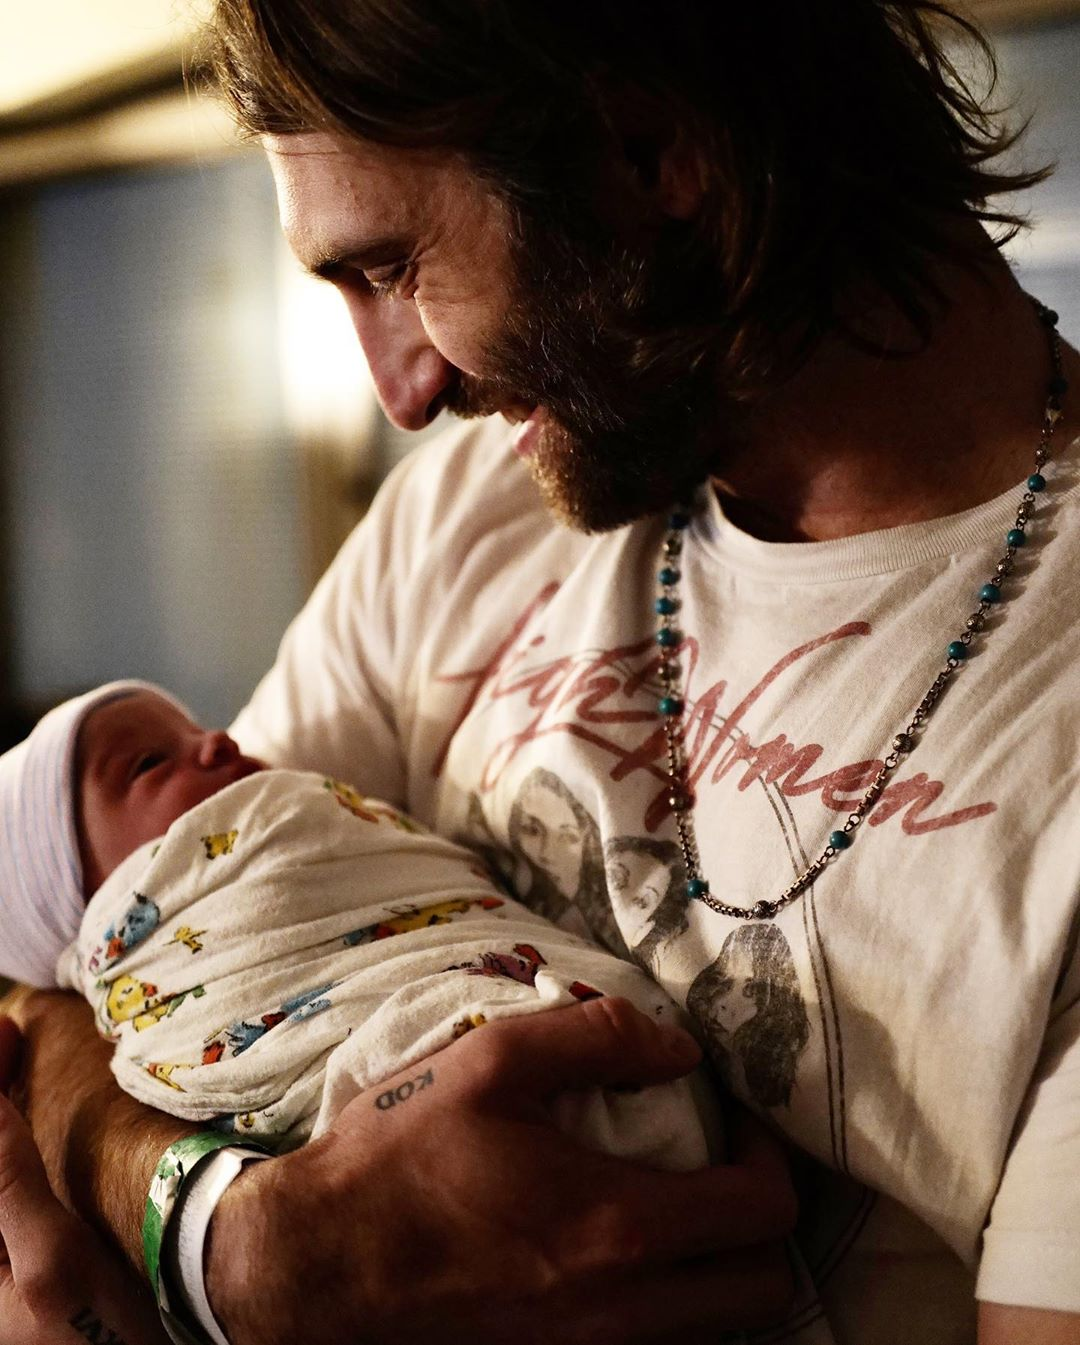 Hayes Andrew Hurd: Say Hello to Maren Morris and Ryan Hurd's 1st child 2